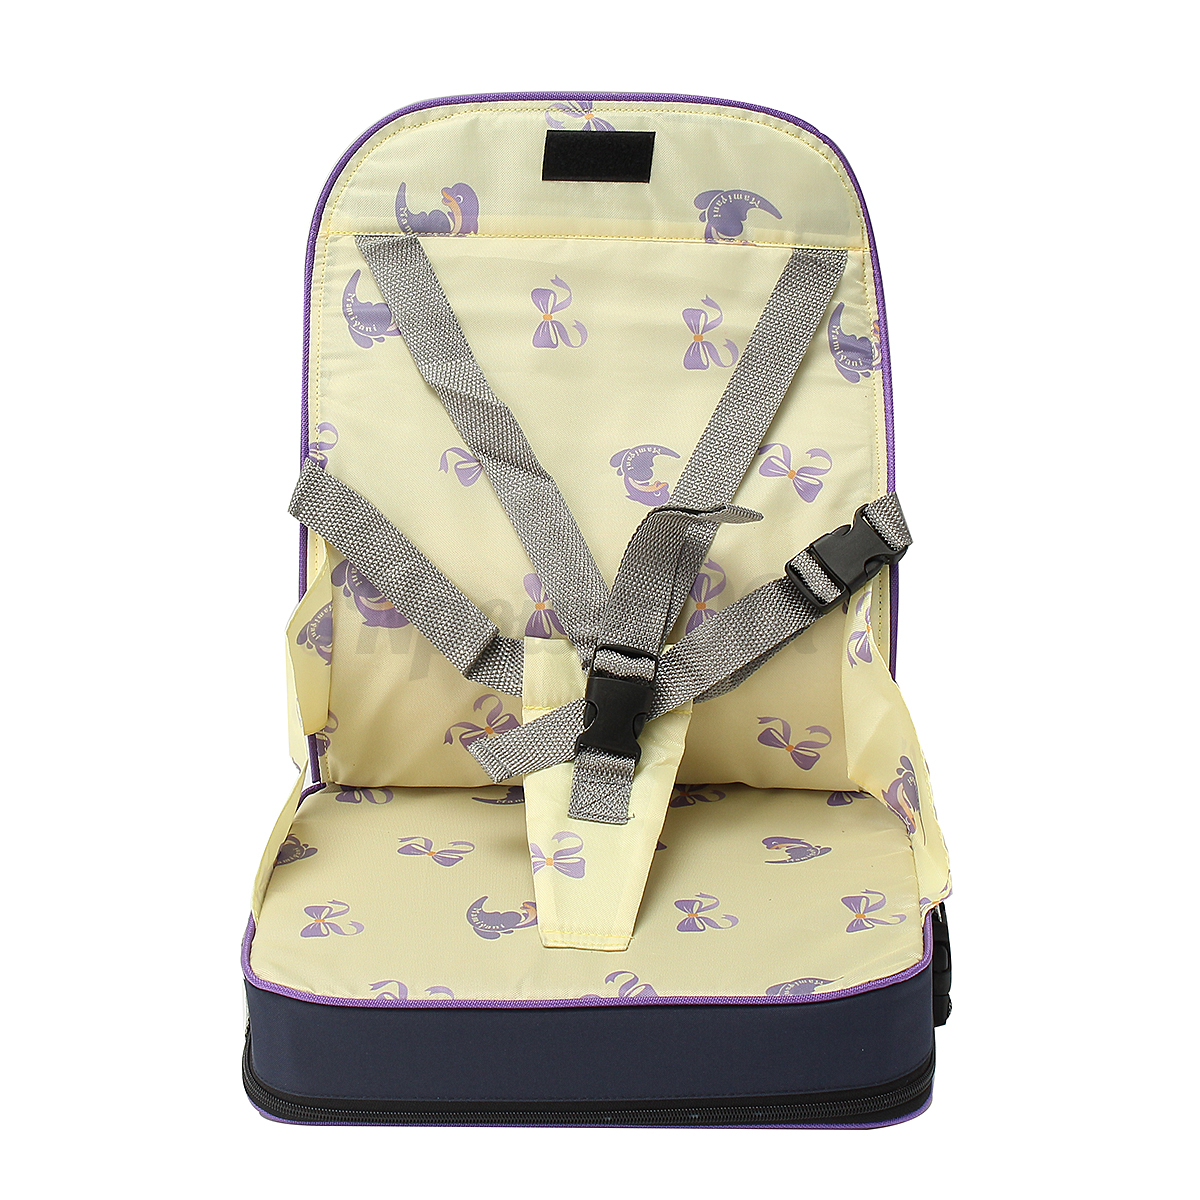 Portable Baby Toddler Dining High Chair Feeding Booster